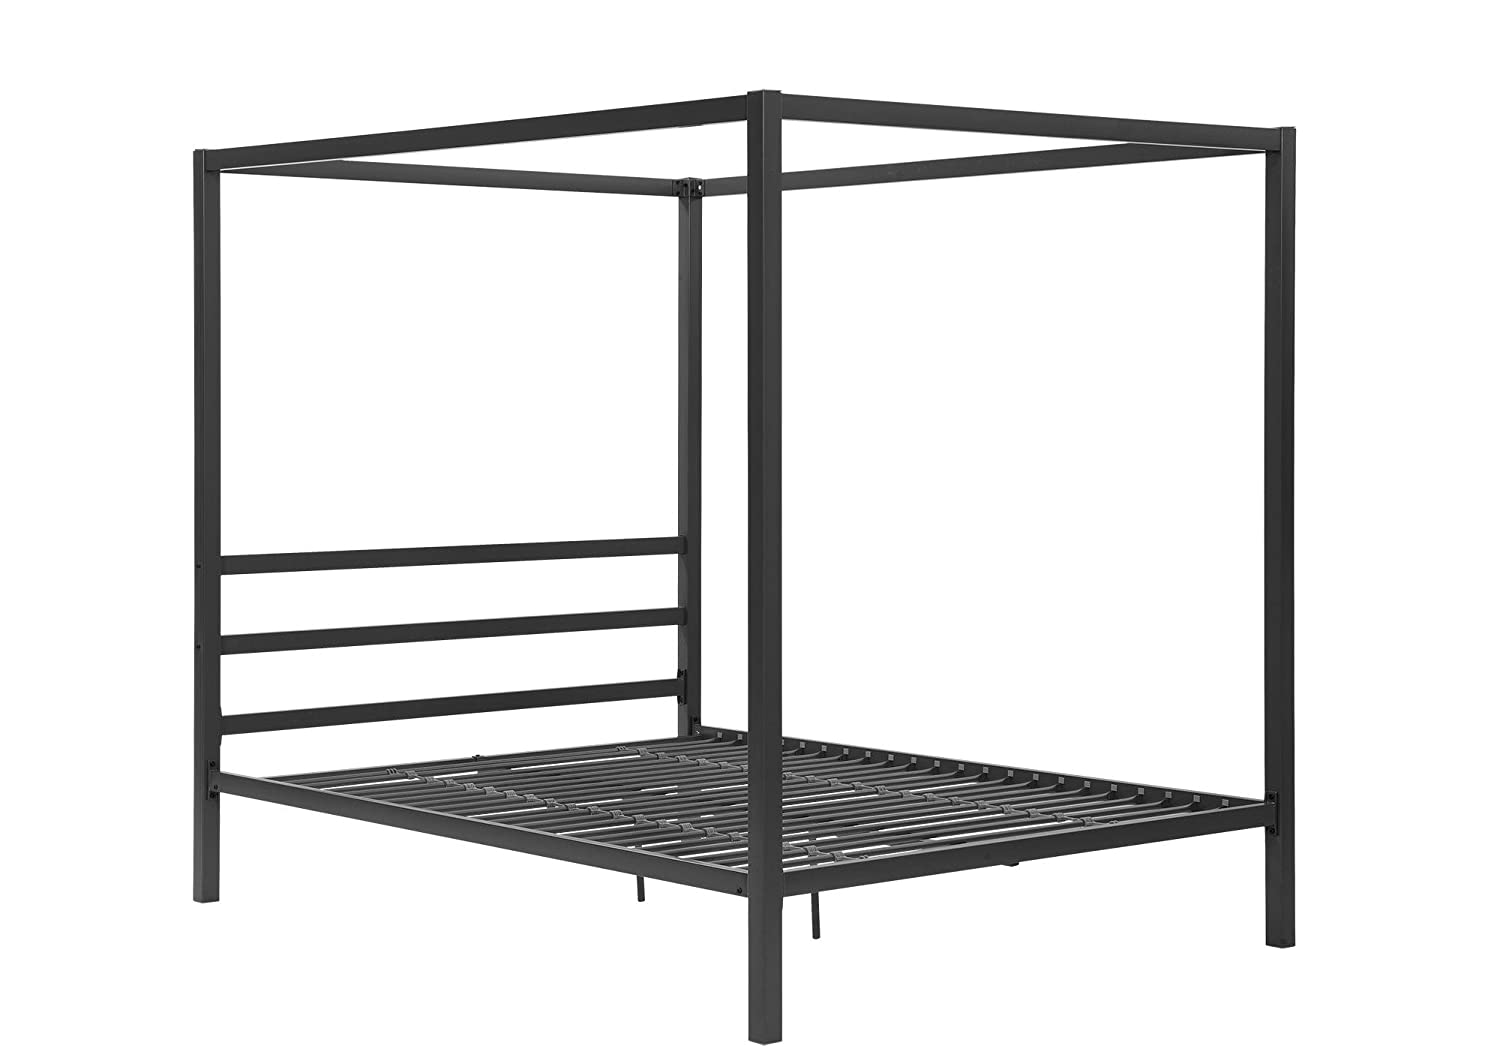 amazoncom dhp modern metal framed industrial canopy bed frame queen grey kitchen dining